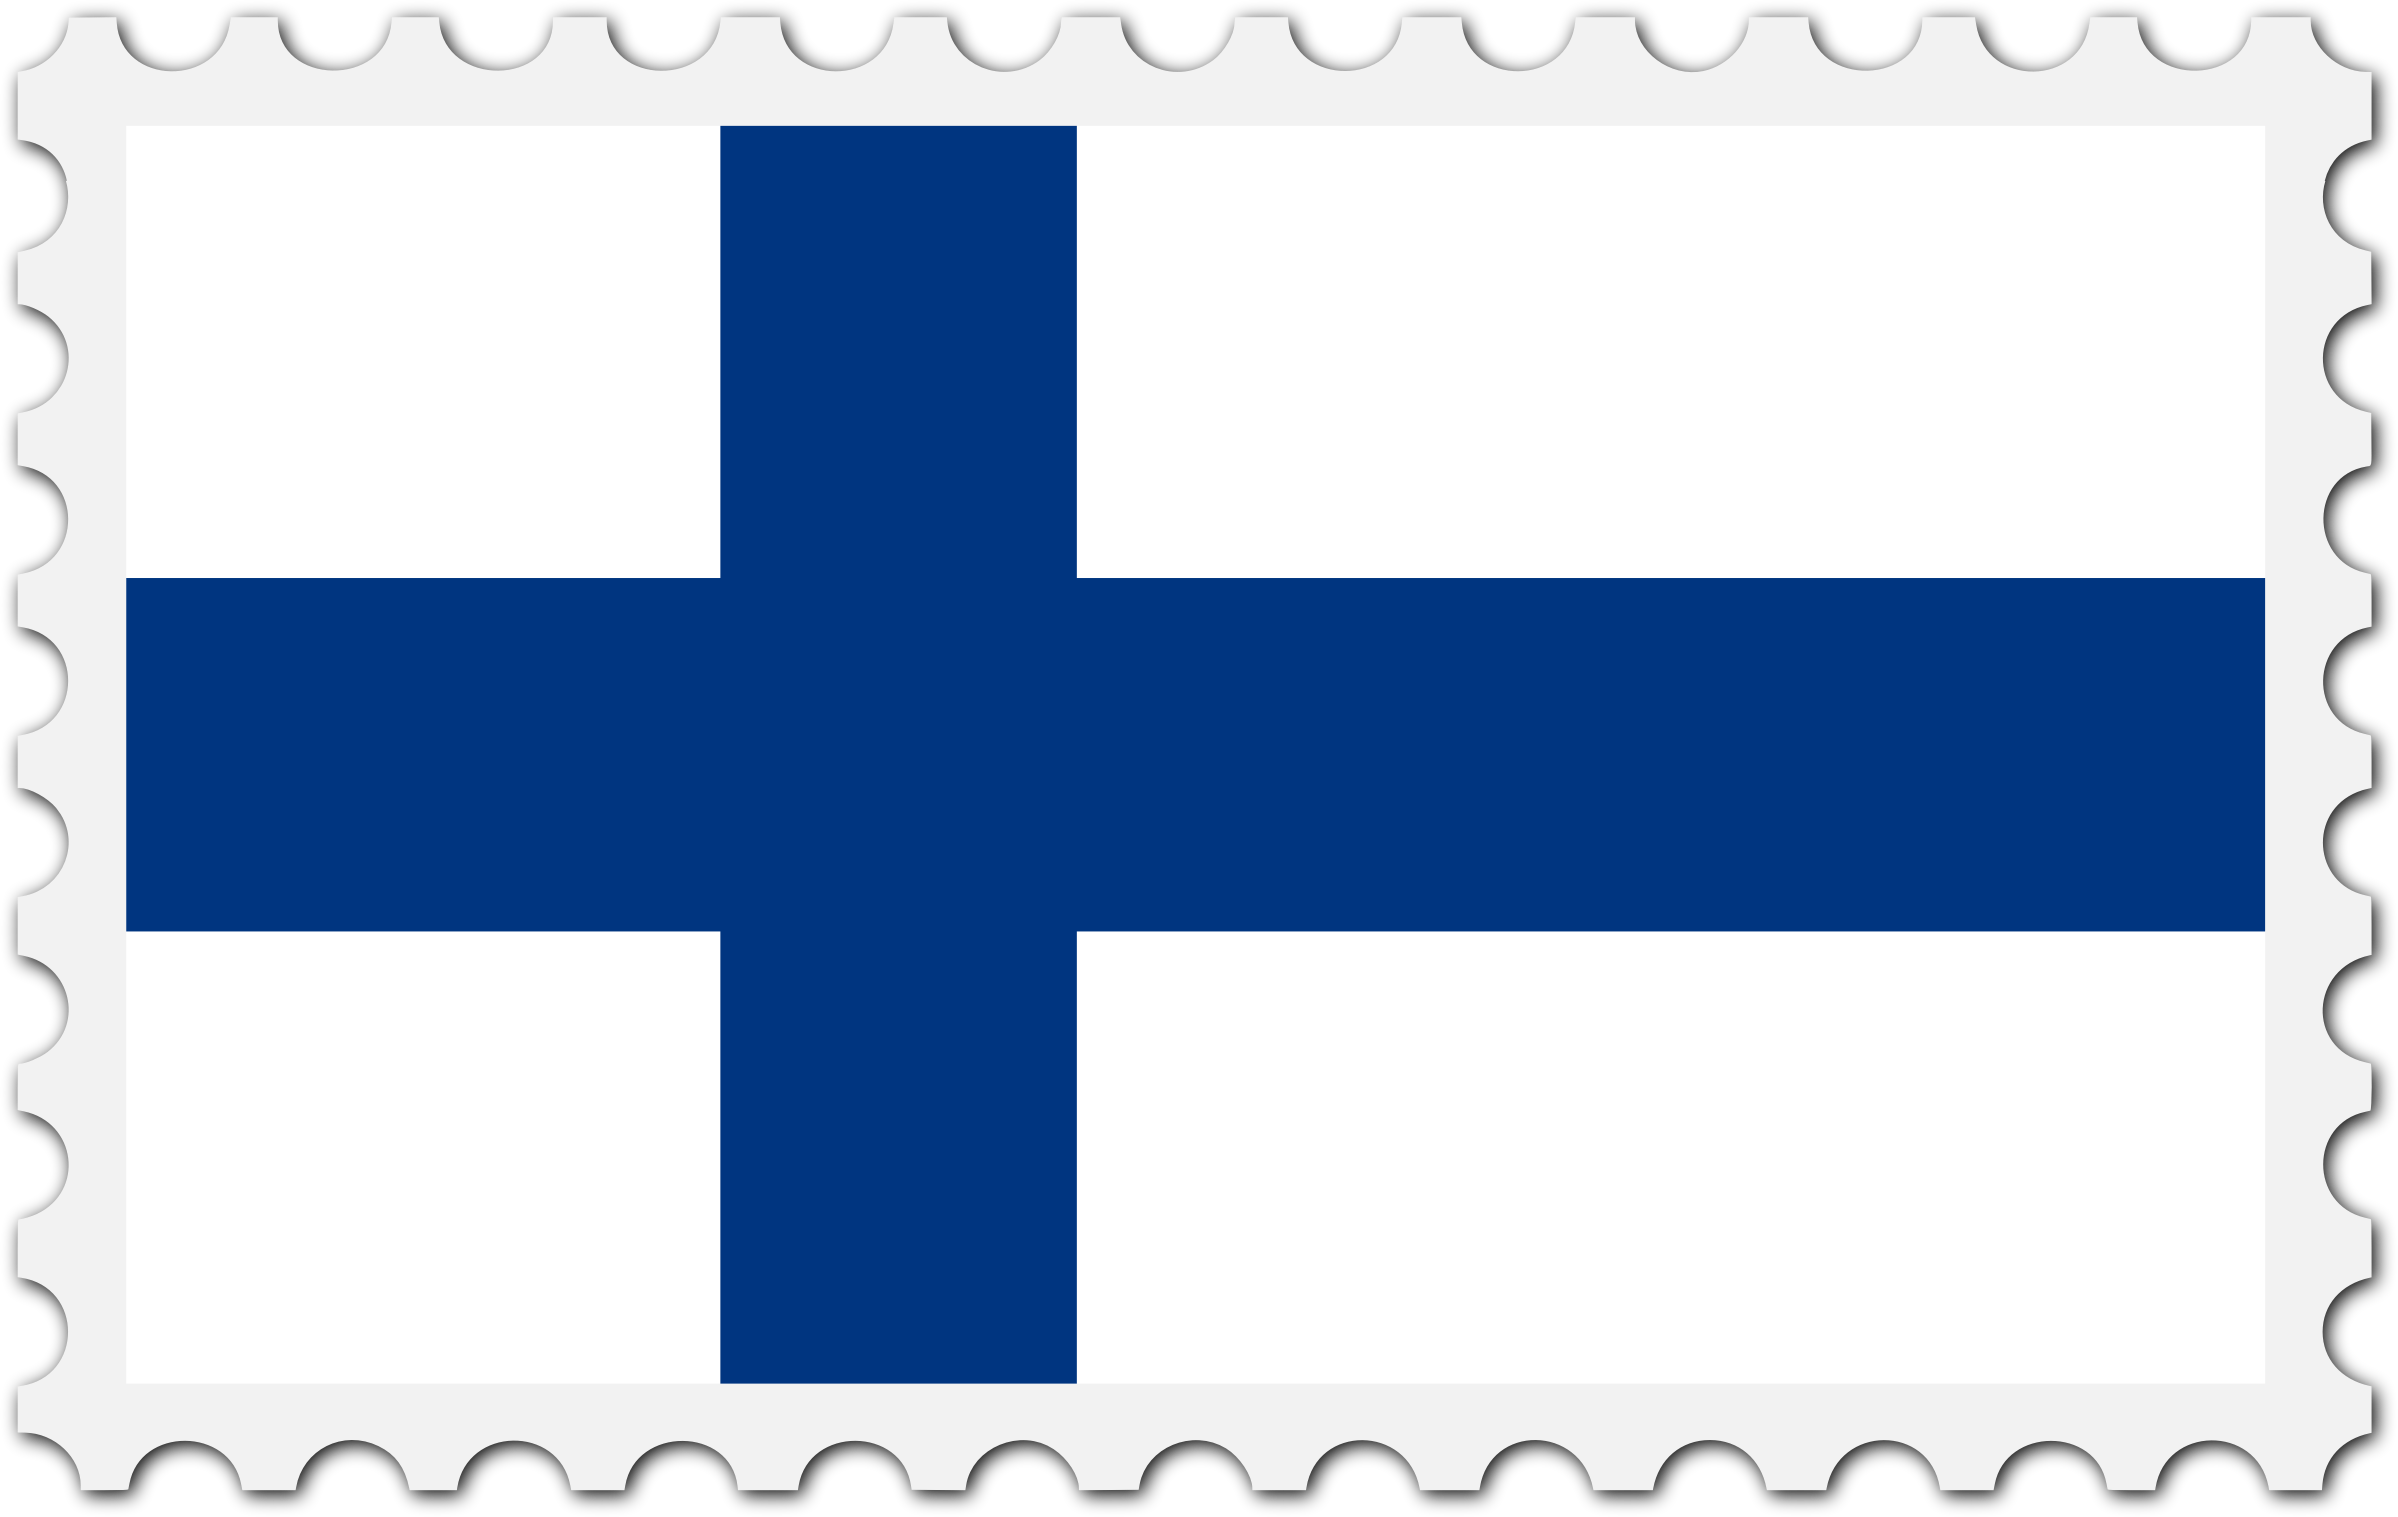 Finland flag stamp by Firkin